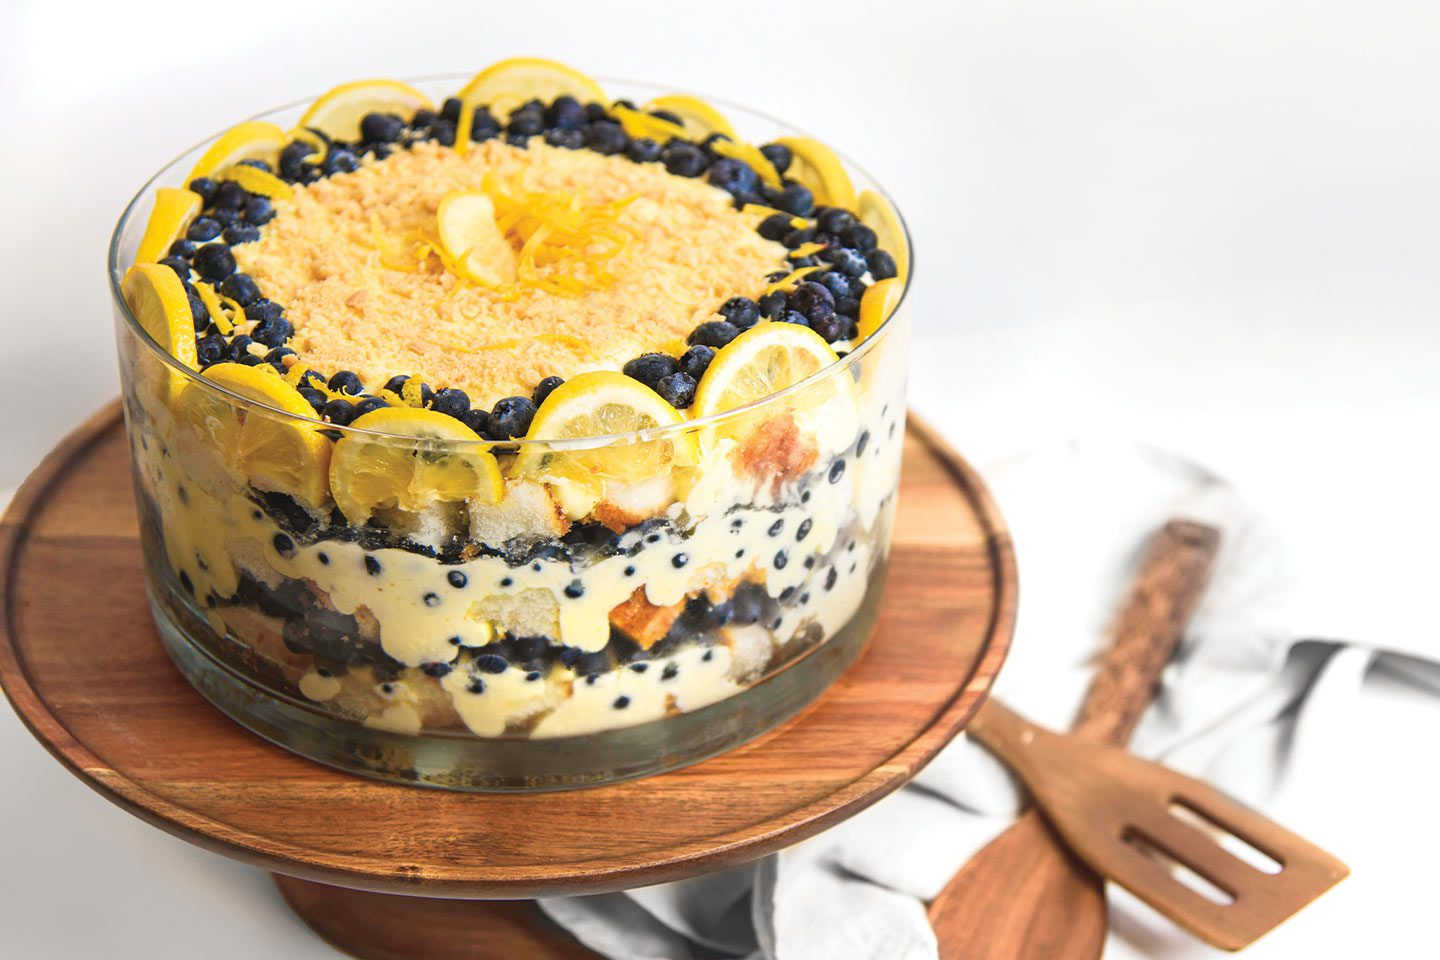 Aline Schrage's Lemon Blueberry Trifle